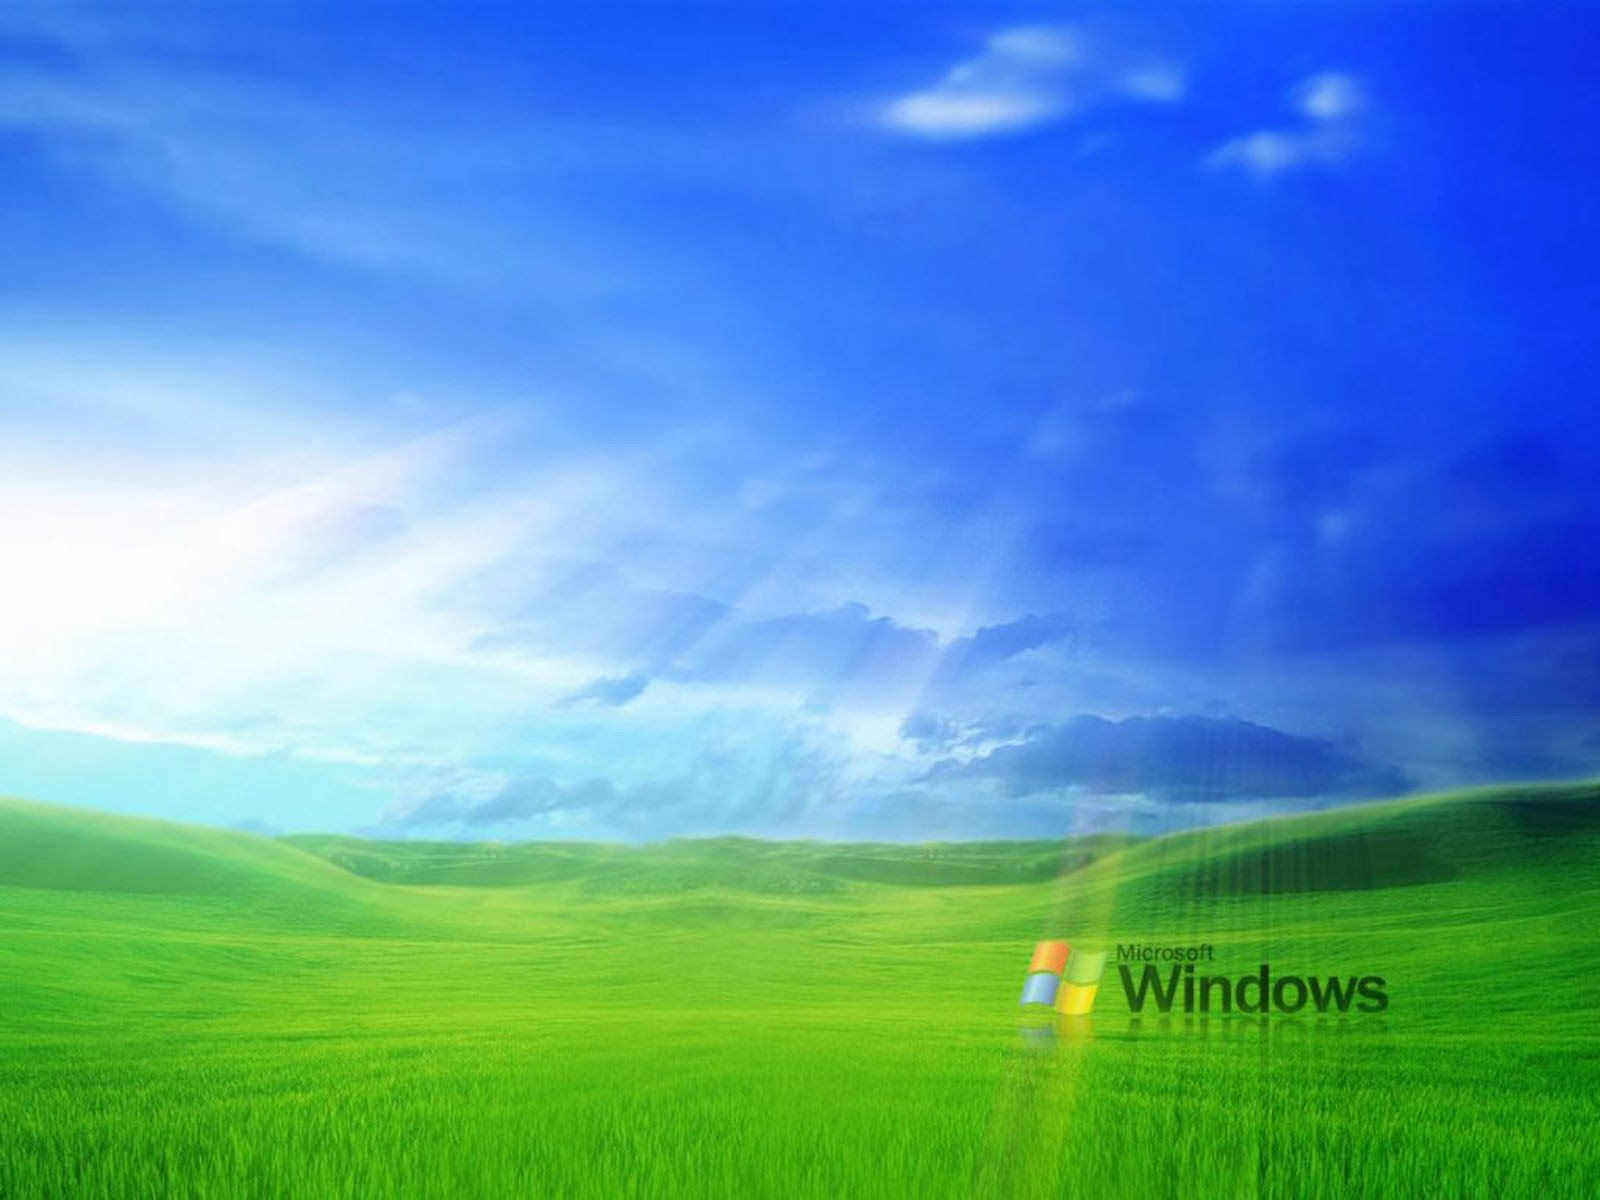 windows xp wallpapers high quality download free | hd wallpapers